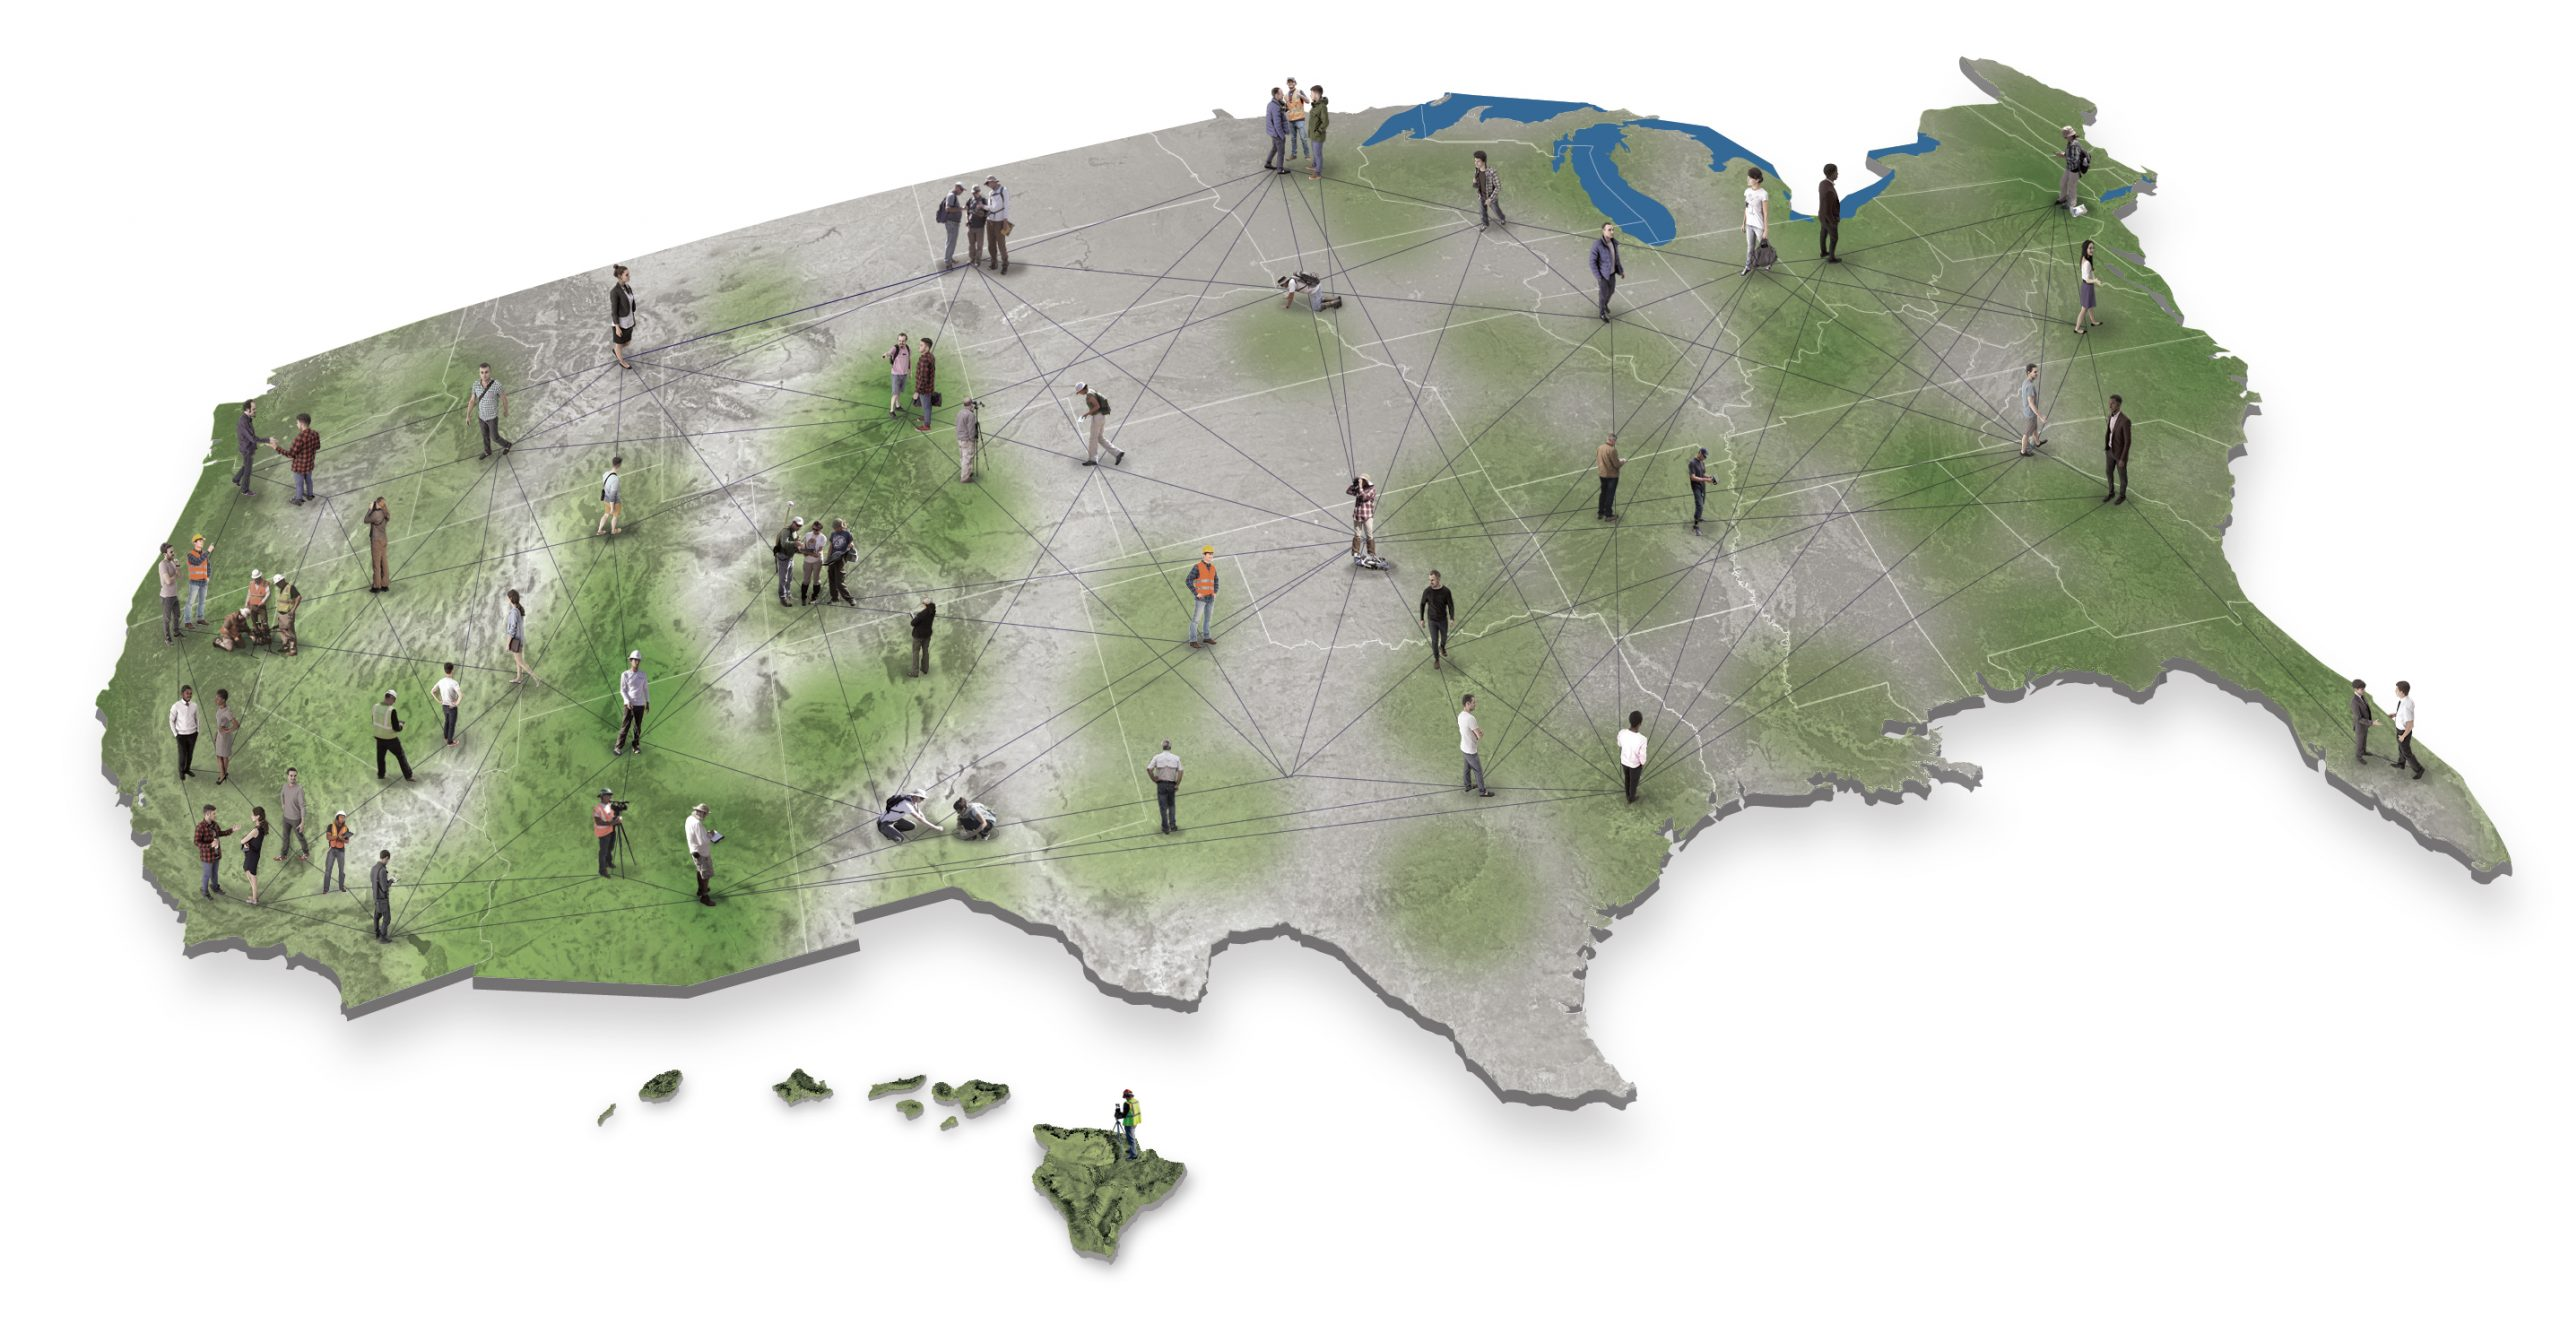 US map with green splotches and people figures distributed throughout.